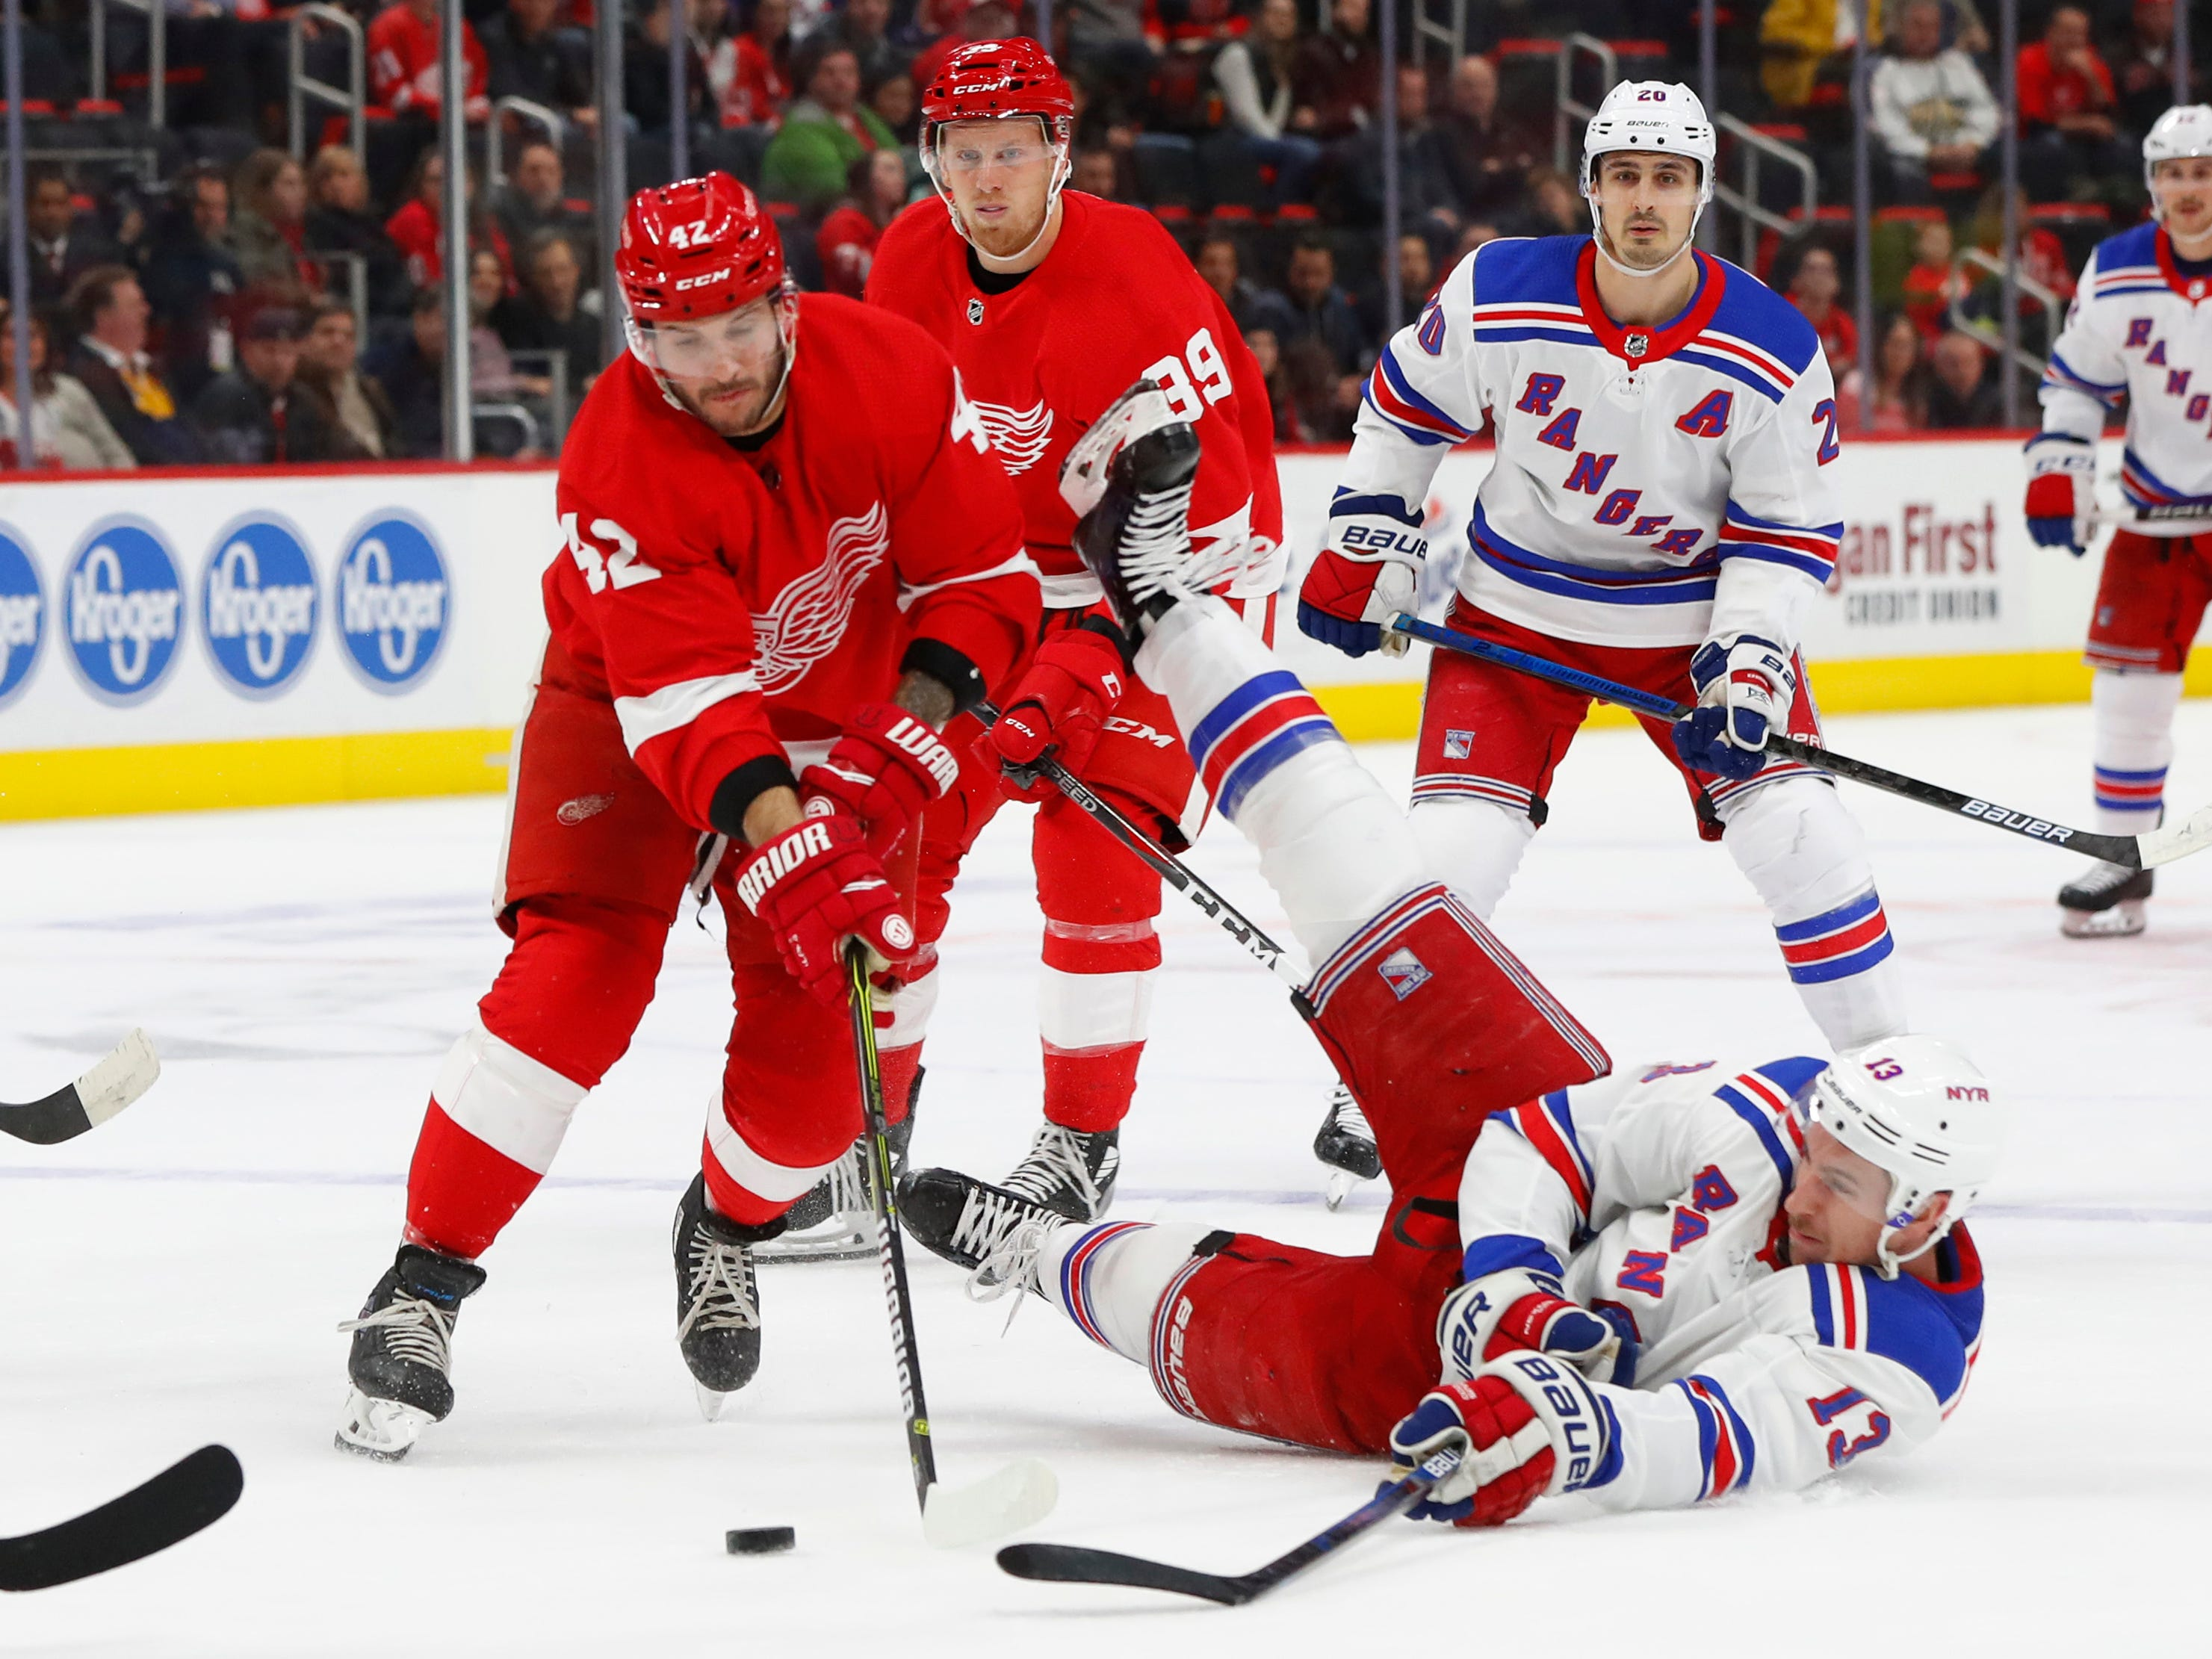 Detroit Red Wings' Martin Frk (42) and New York Rangers' Kevin Hayes (13) battle for the puck in the first period of an NHL hockey game in Detroit, Friday, Nov. 9, 2018.